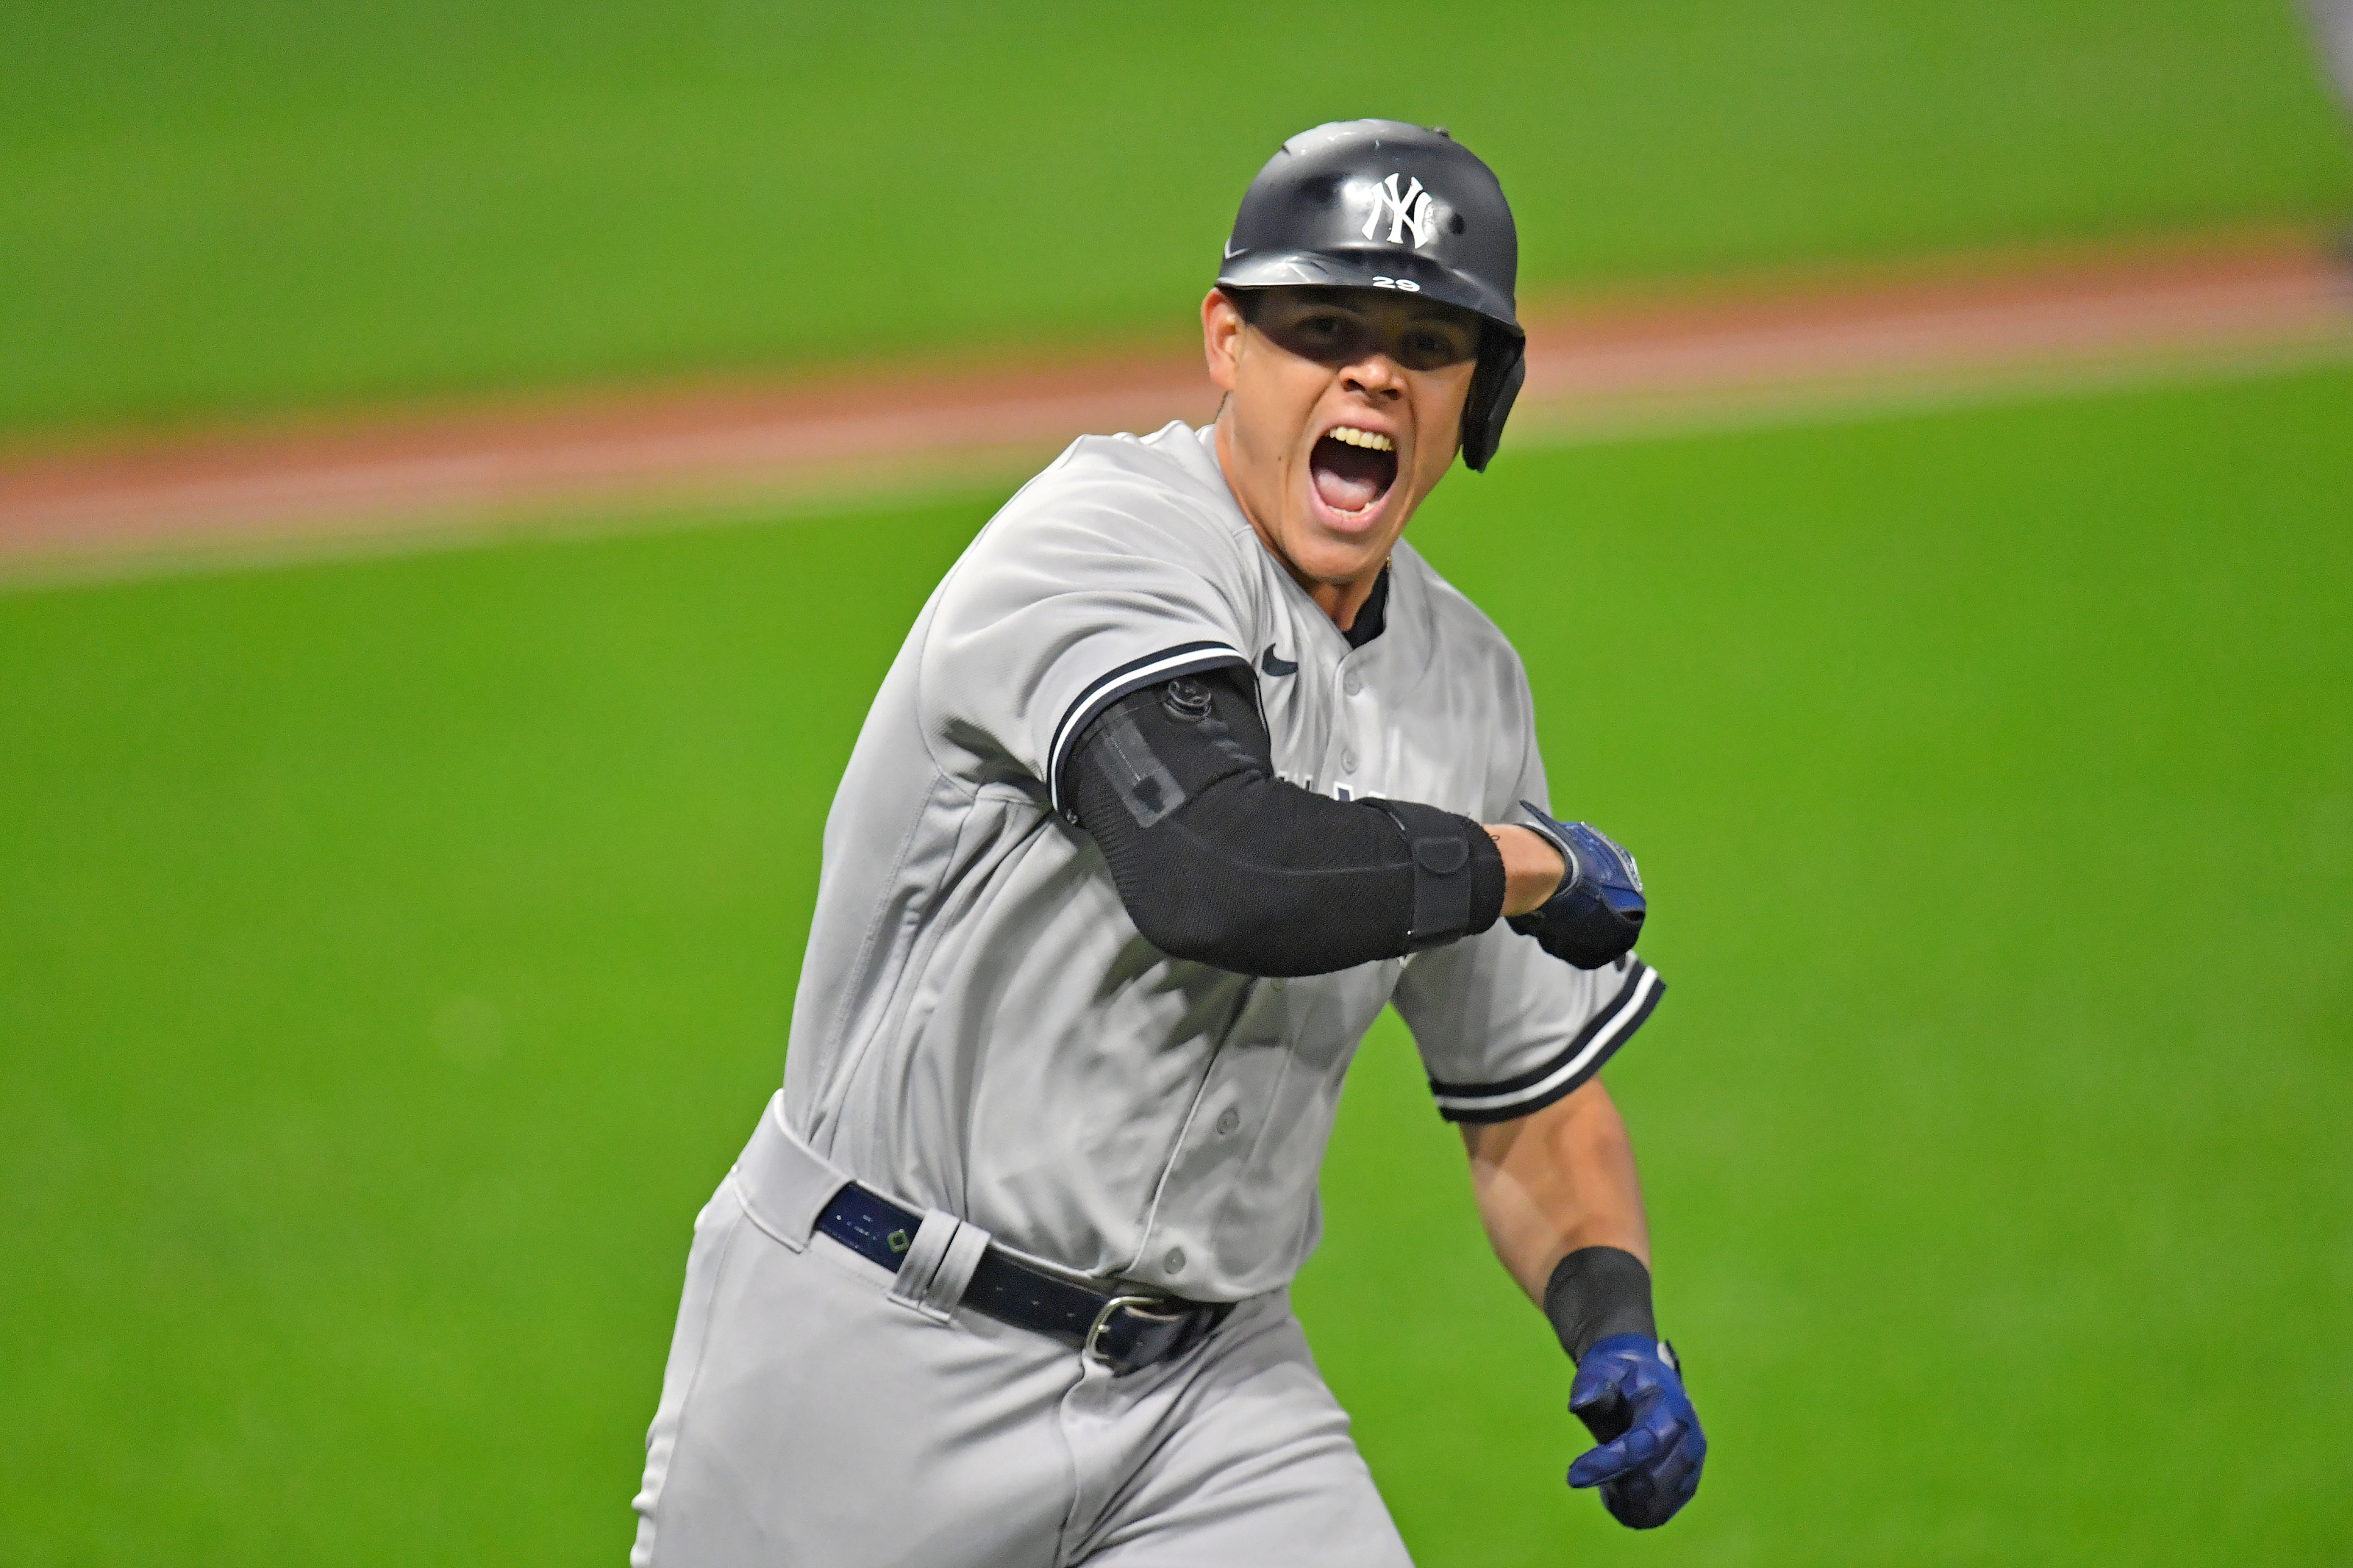 Yankees: Buck Showalter shows real love for Gio Urshela with hilarious quote